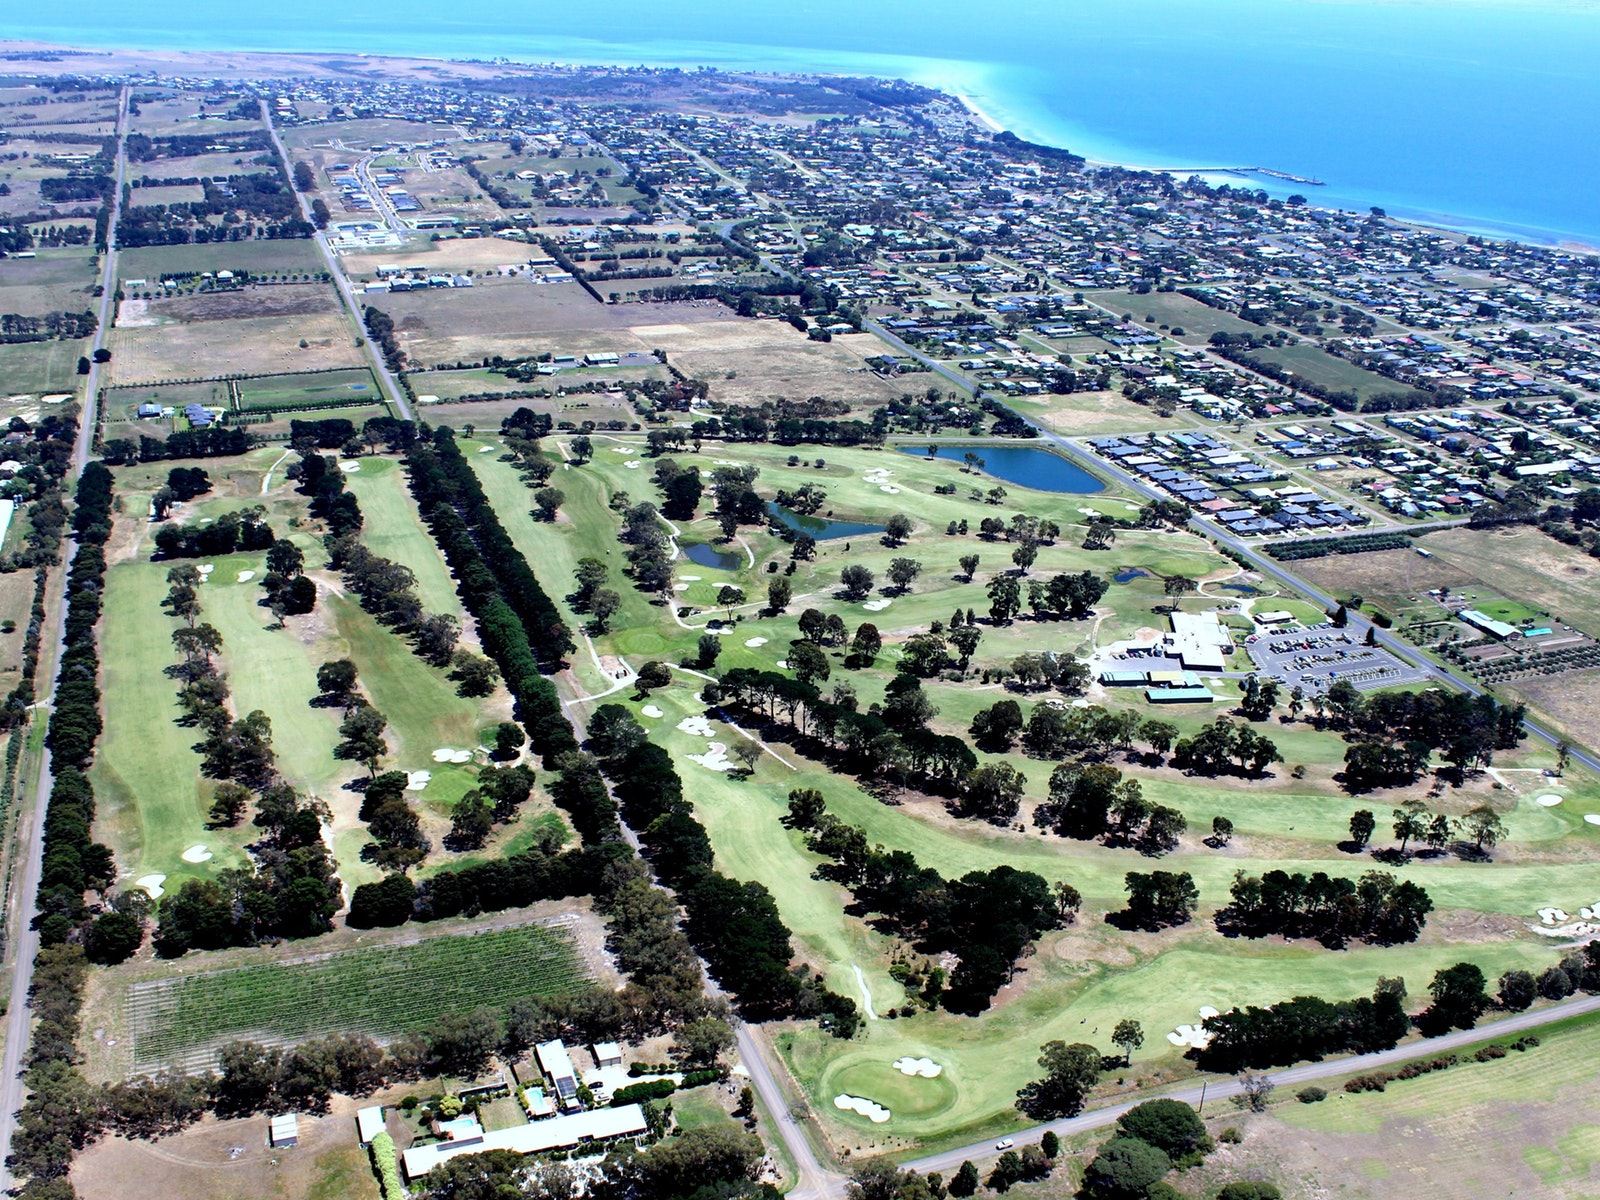 Port Golf Club from above